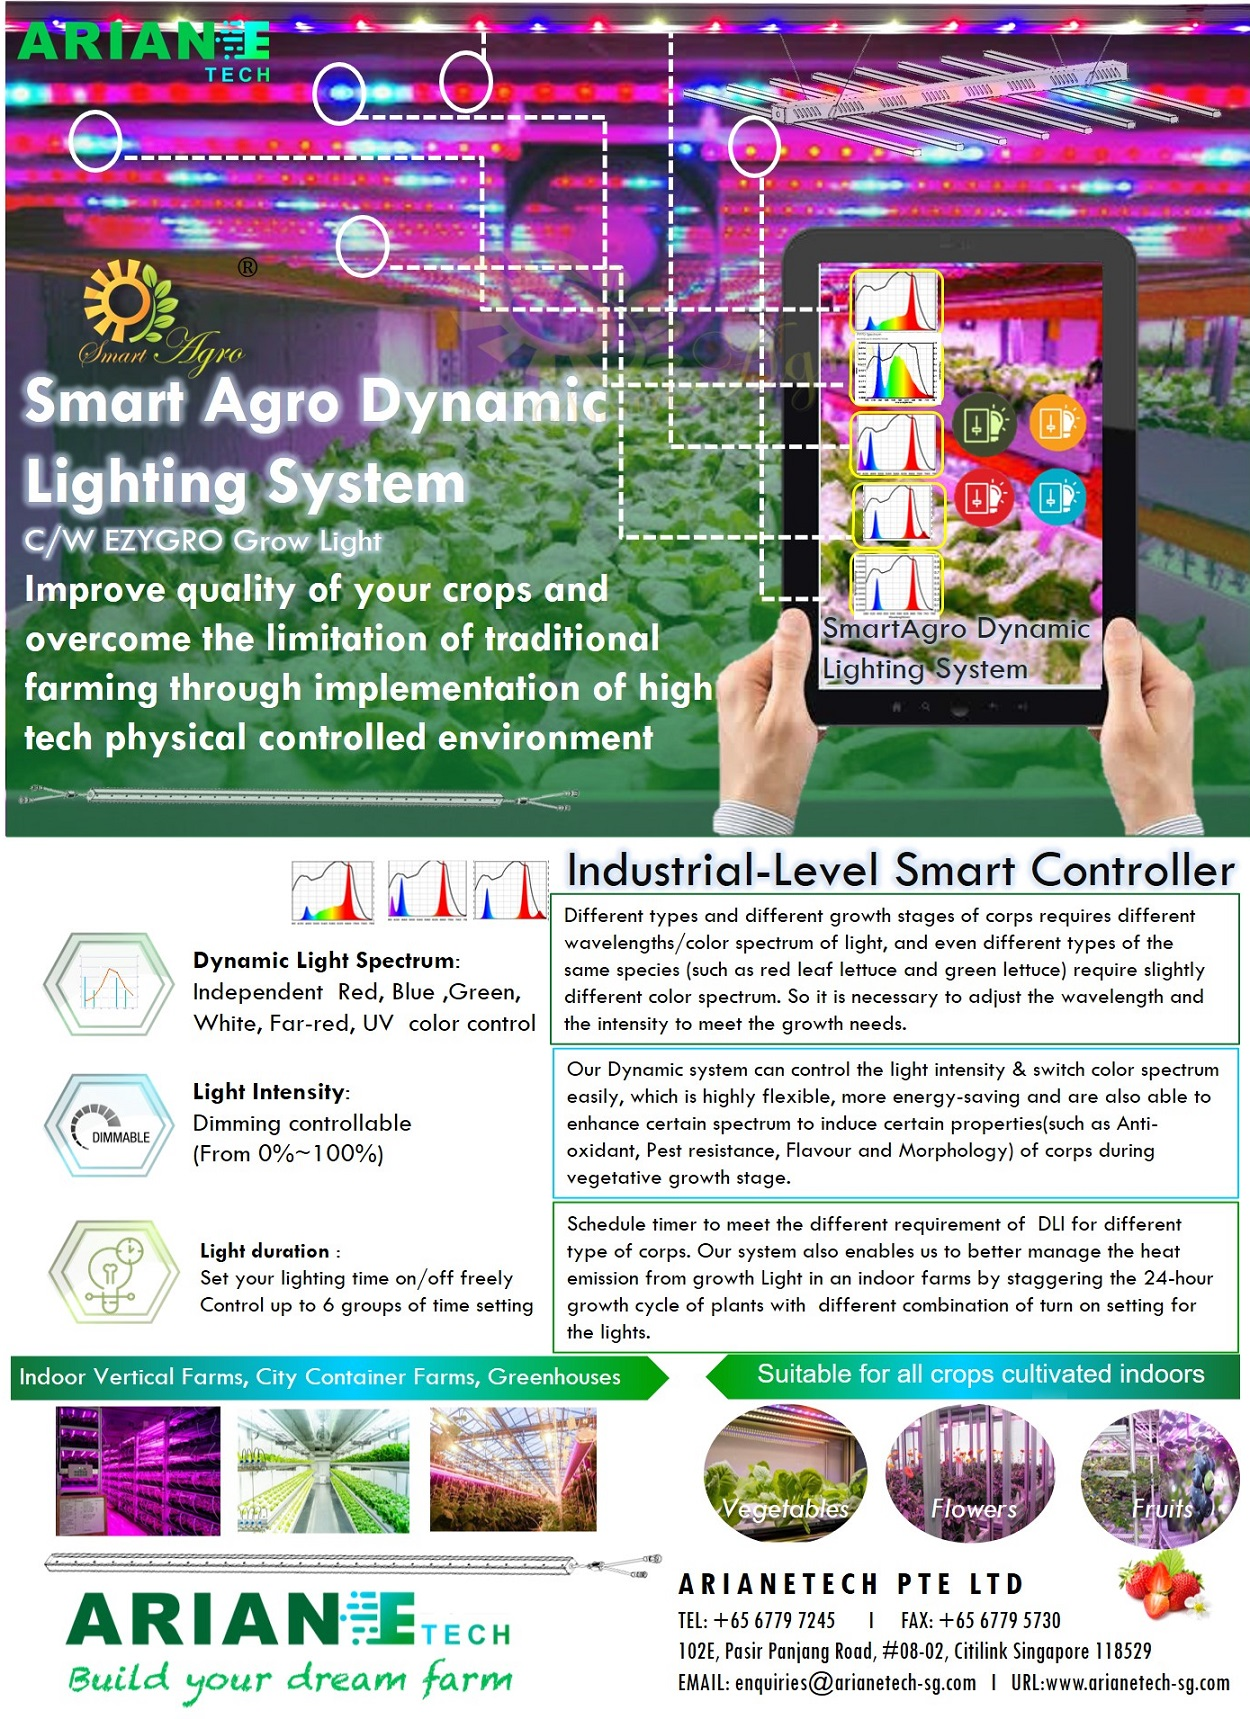 Smart Agro Dynamic Lighting Touch Screen Panel Control System1